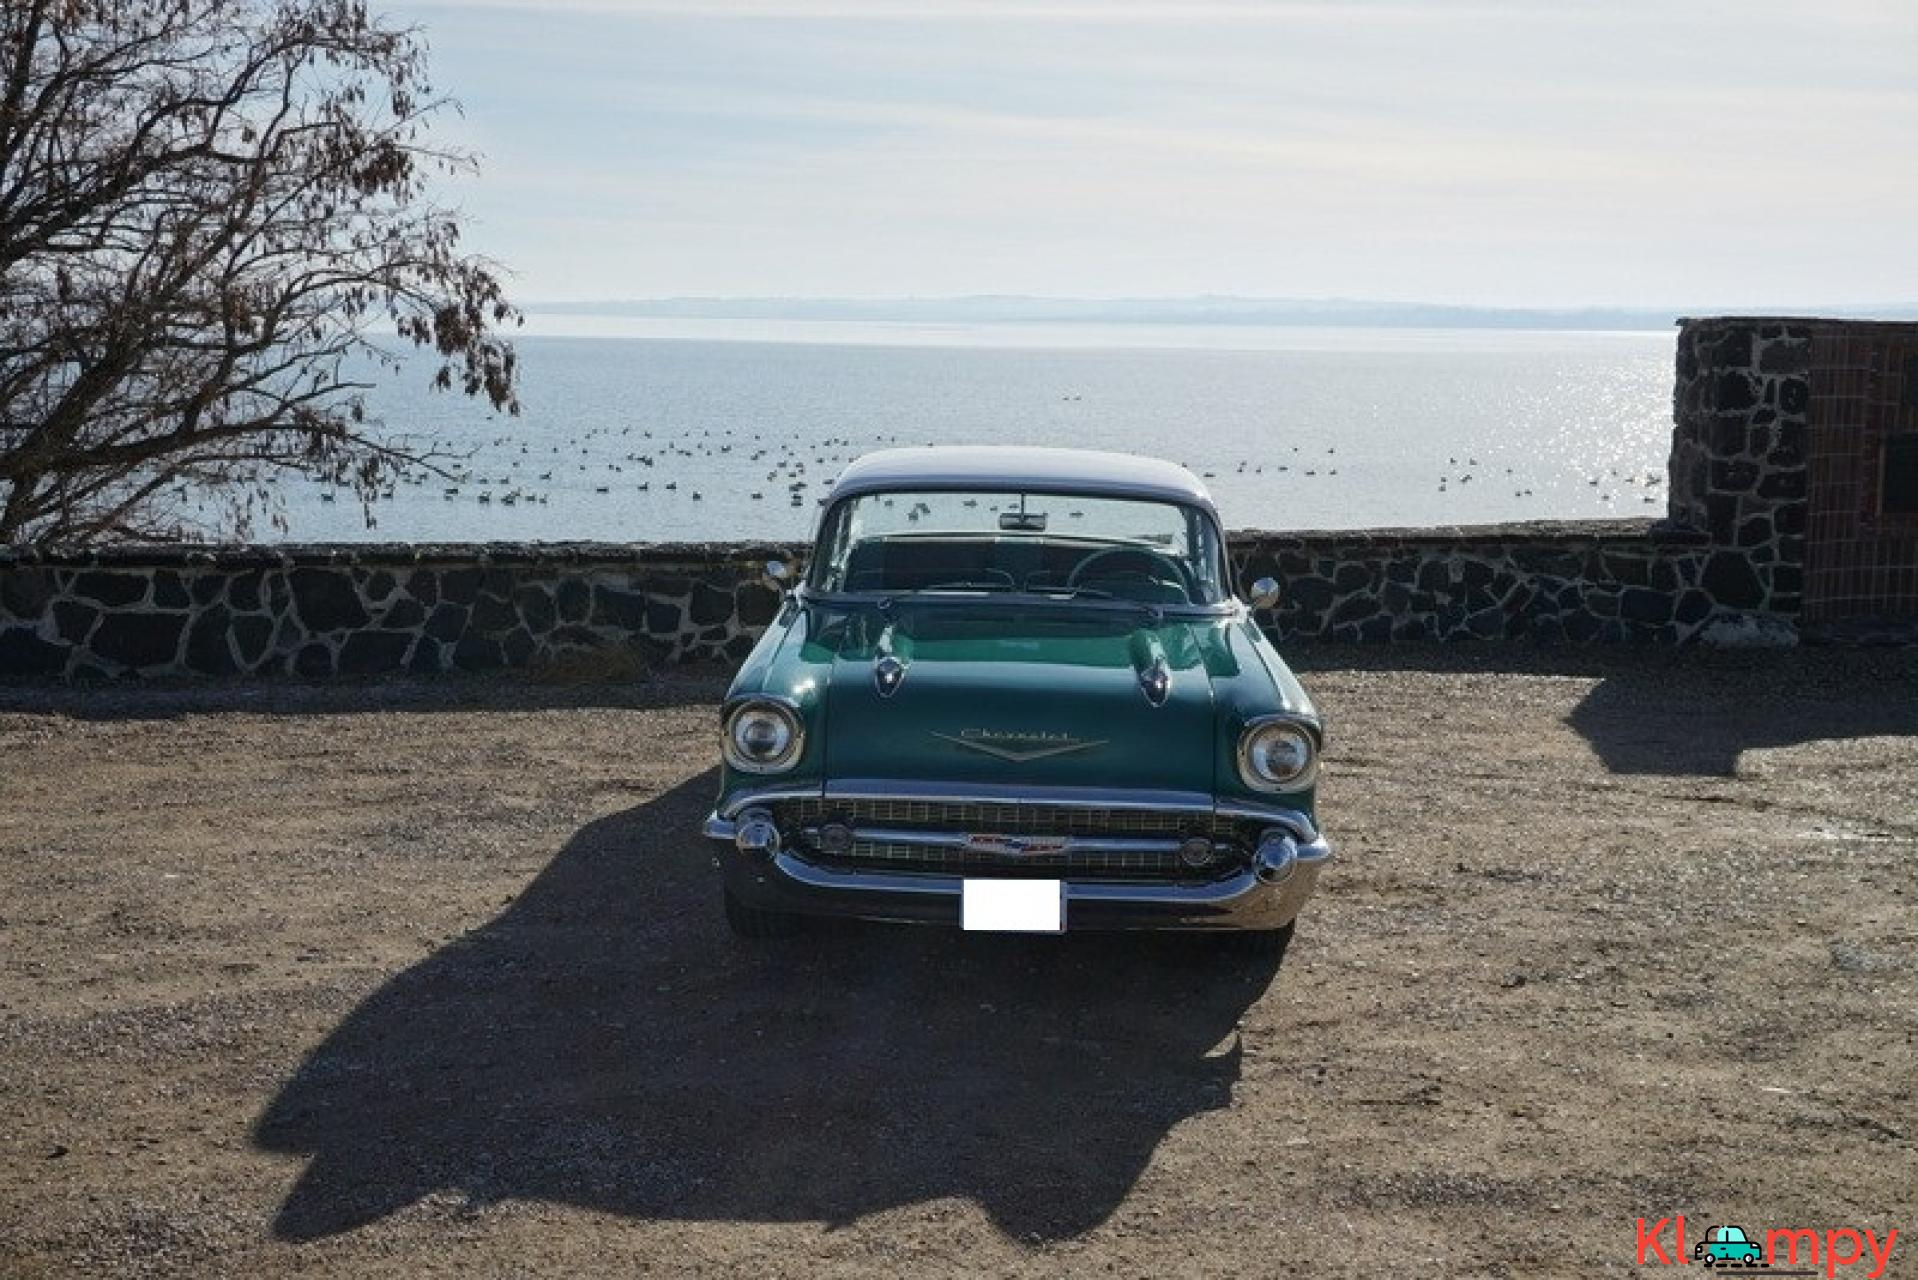 1957 Chevrolet Bel Air 150 210 Hardtop - 5/20